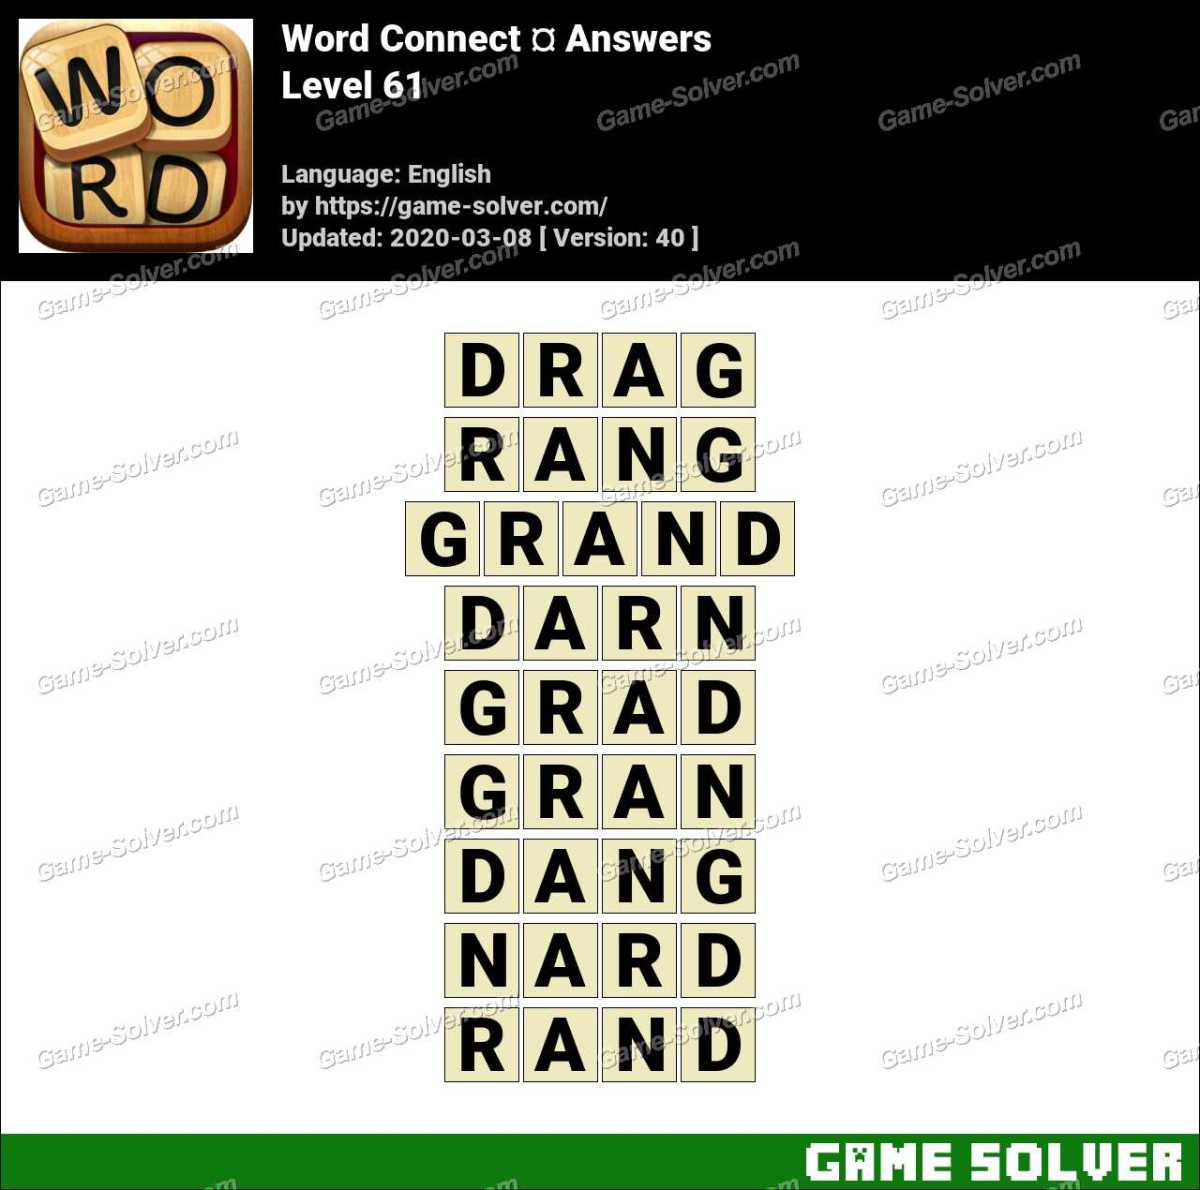 Word Connect Level 61 Answers